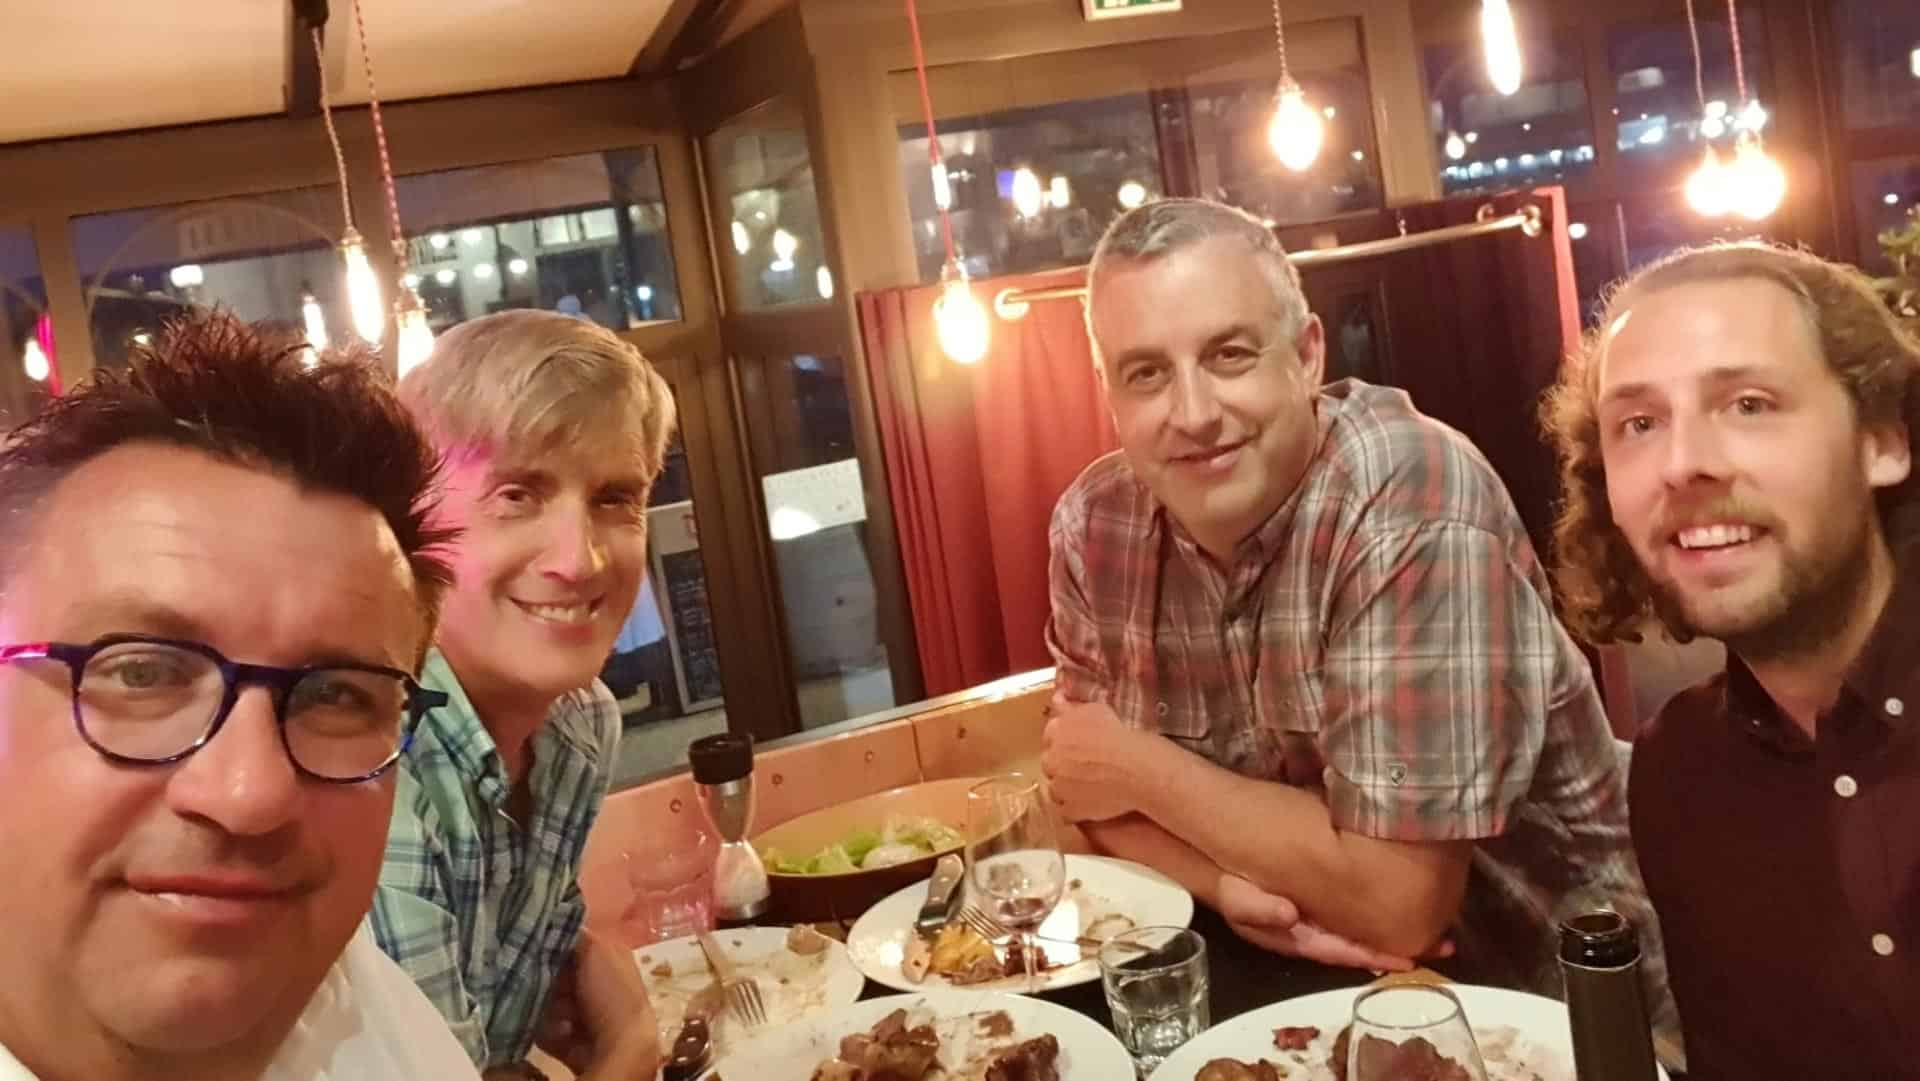 Gilles is a great host and is always anxious to introduce his guests to the best the Vendee region has to offer. Before leaving Les Sables, Gilles treated us to an evening at a friend's restaurant in the old port. Fantastic.